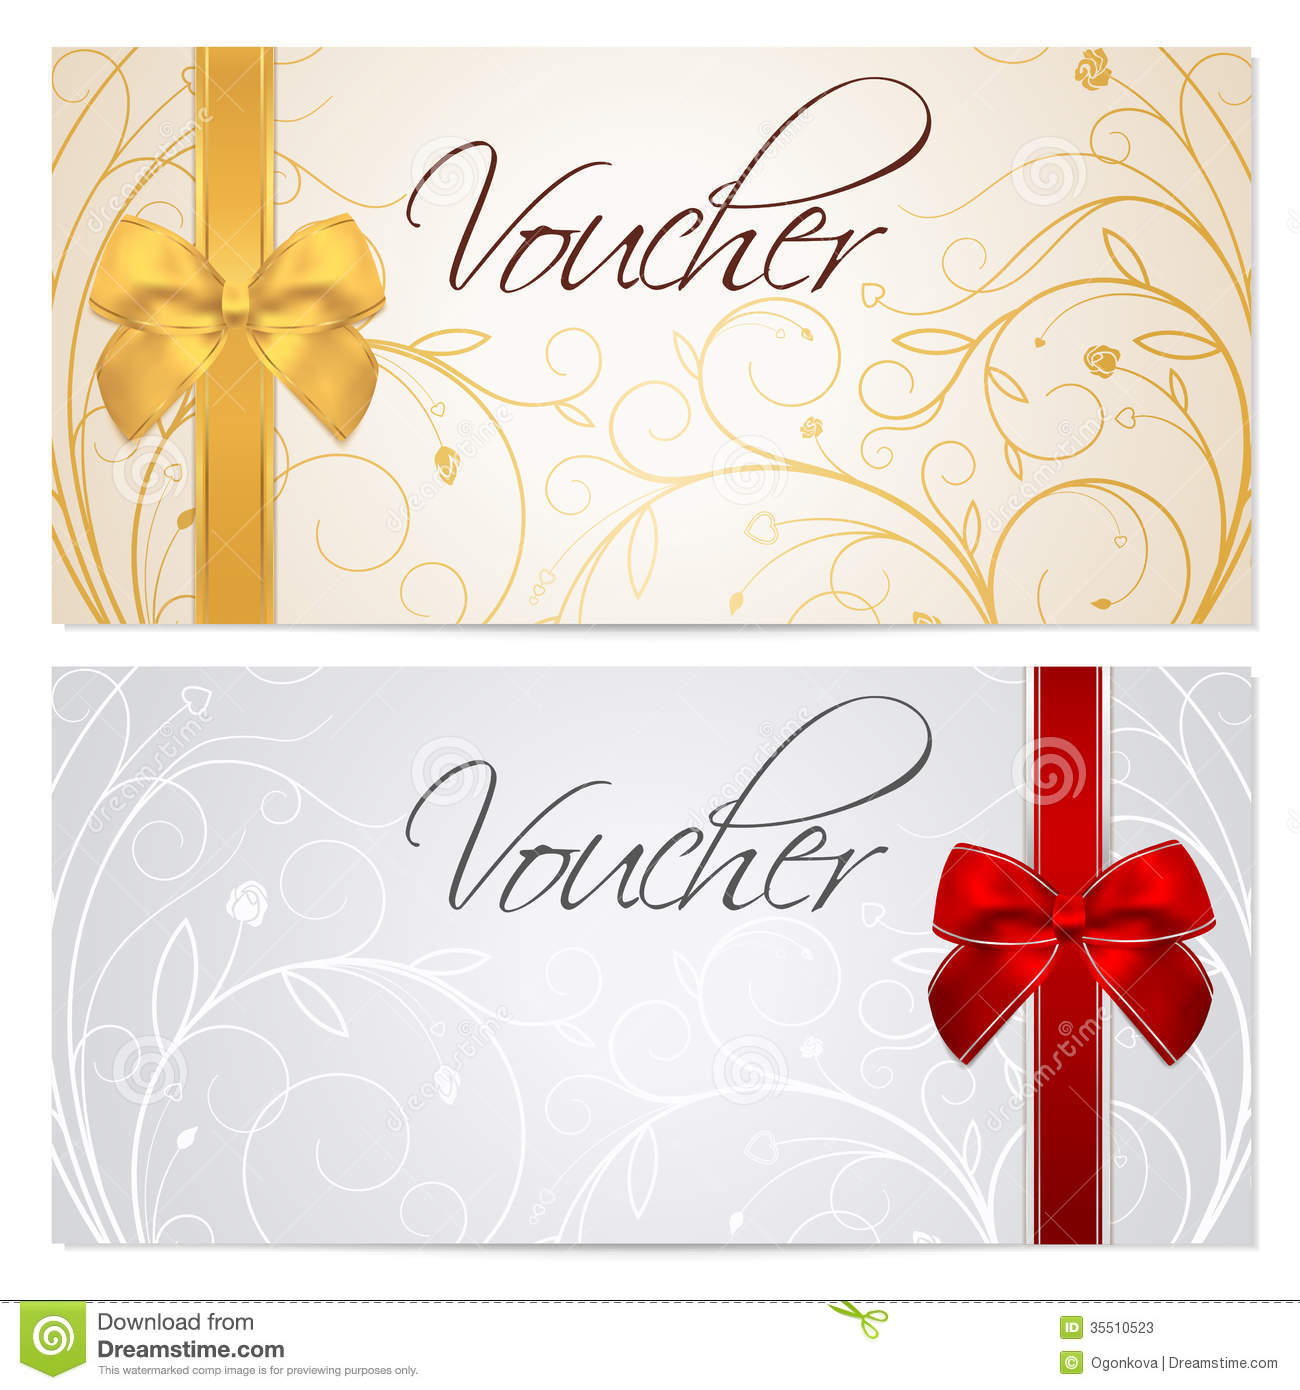 Voucher (Gift Certificate, Coupon) Template. Red B  Create Your Own Voucher Template